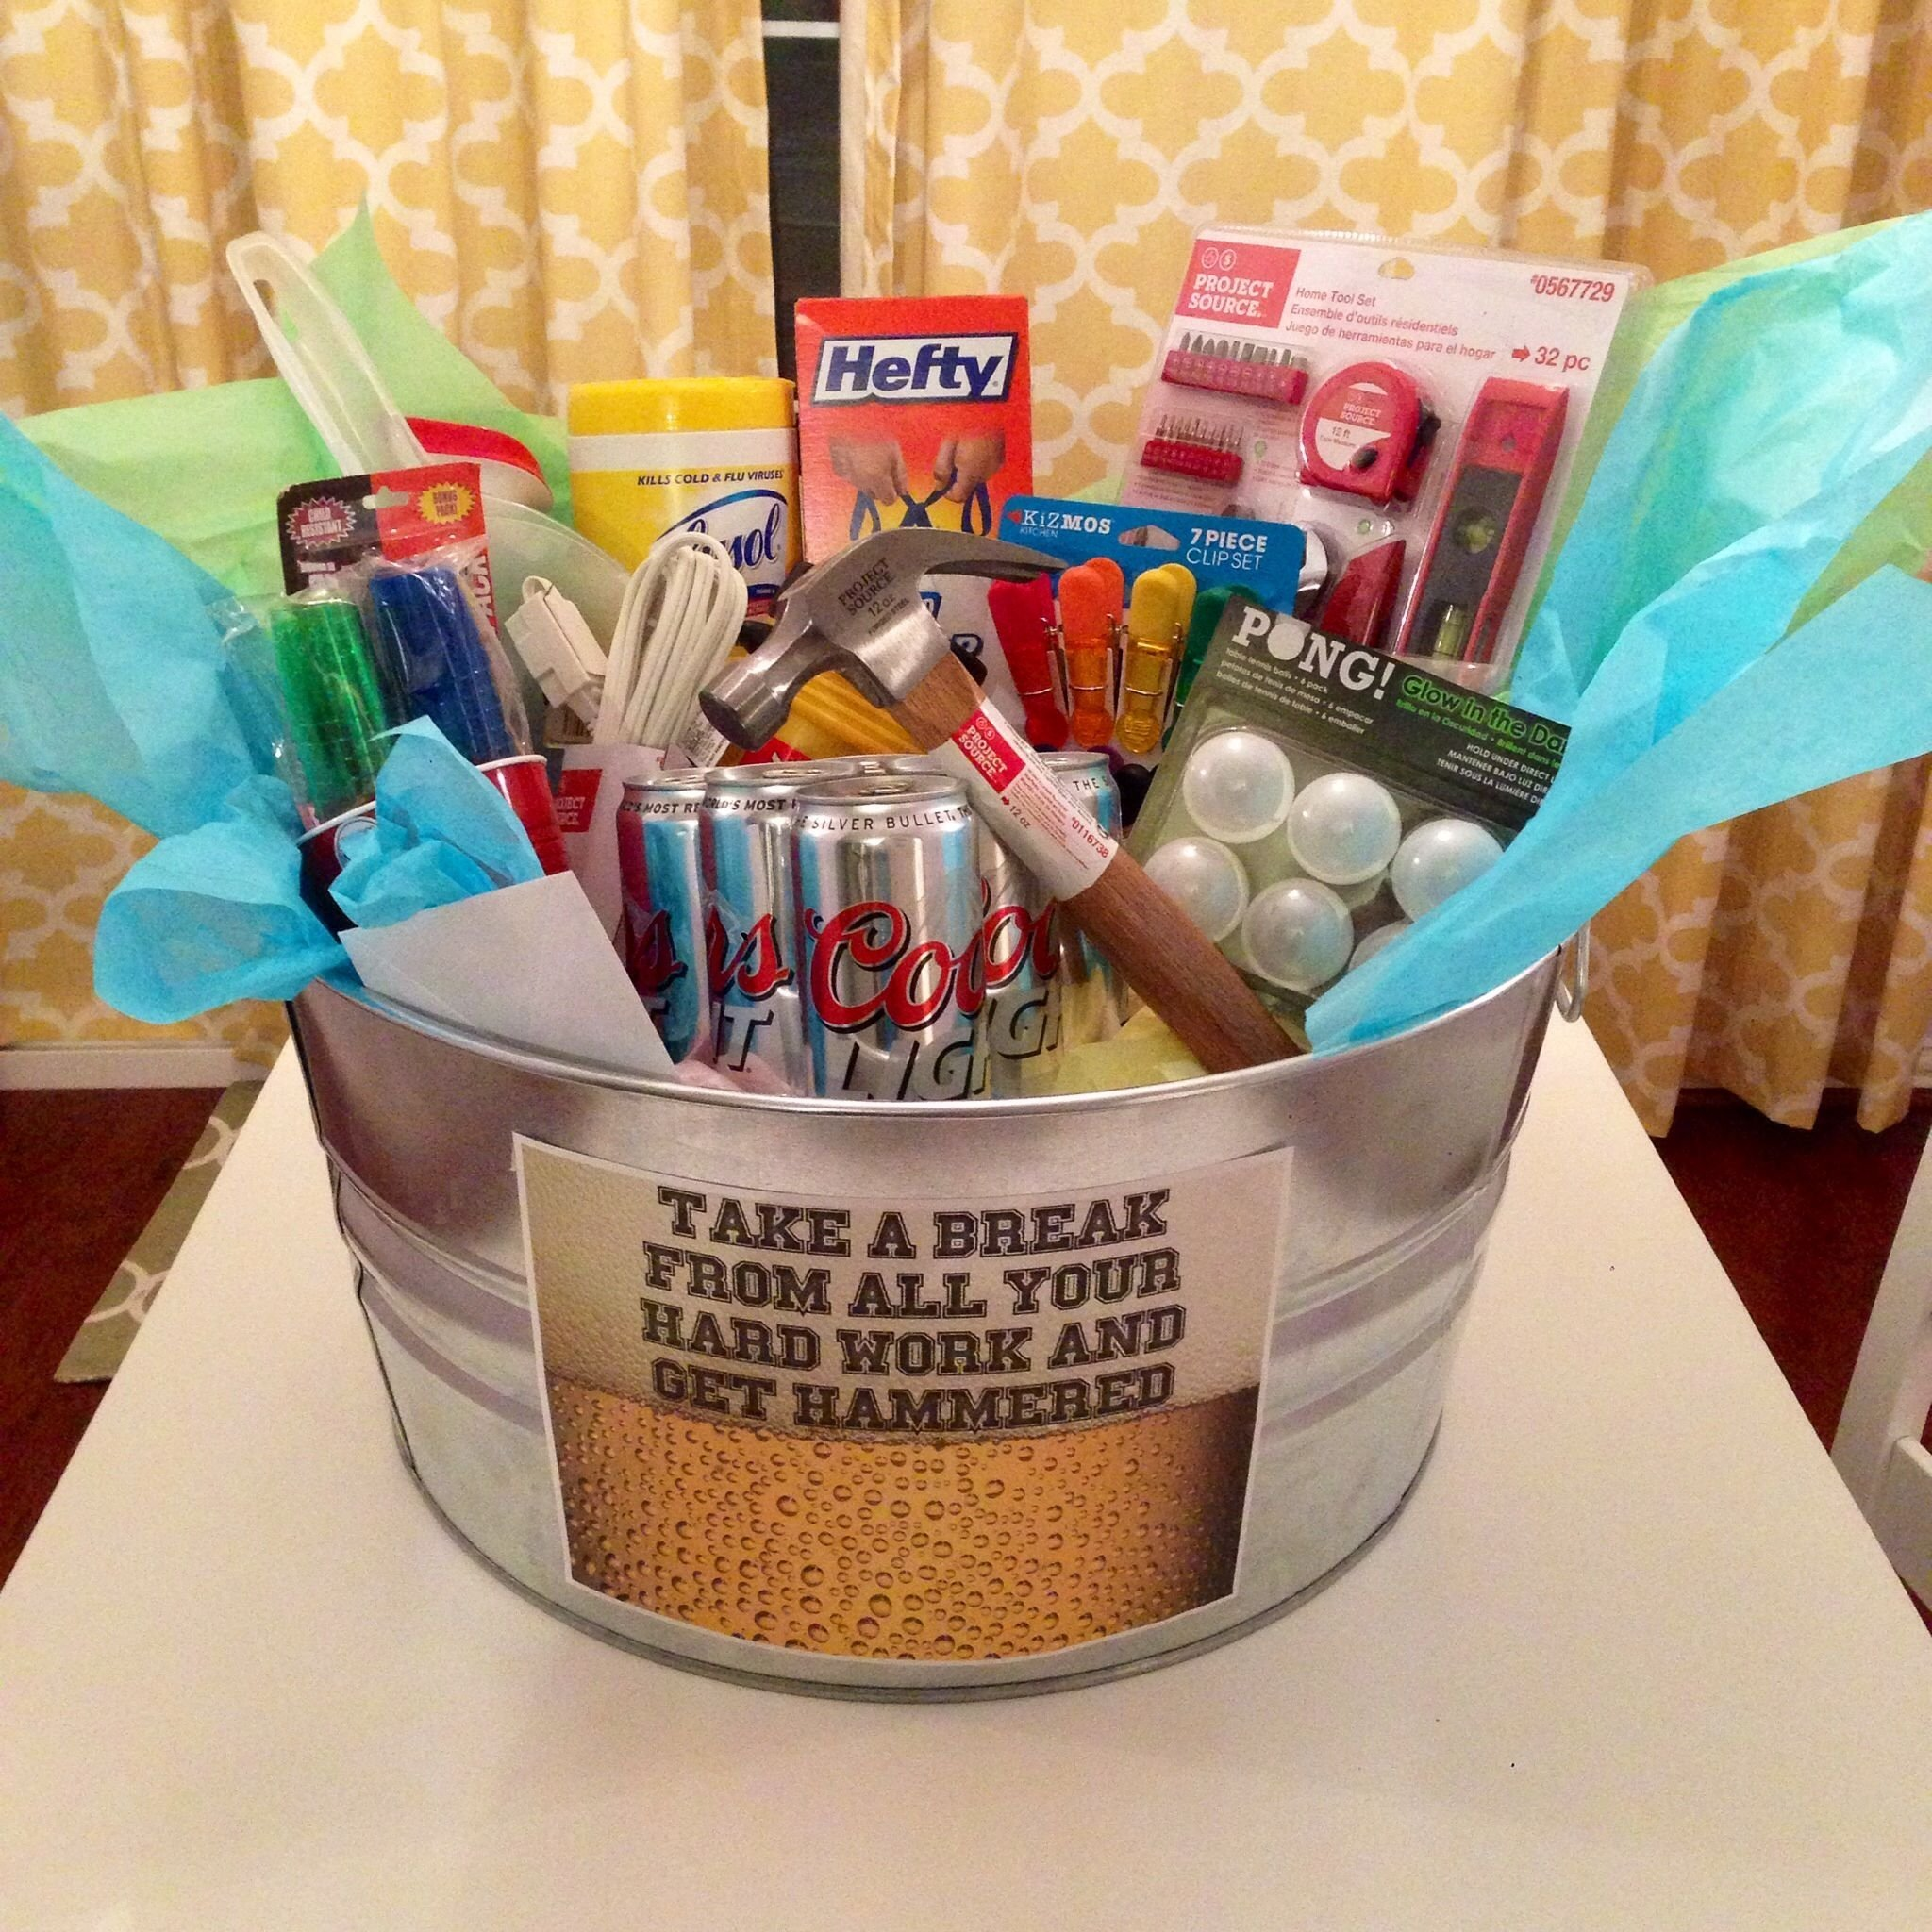 10 Lovable Housewarming Gift Ideas For Men the housewarming basket i made my boyfriend pinteres 2020